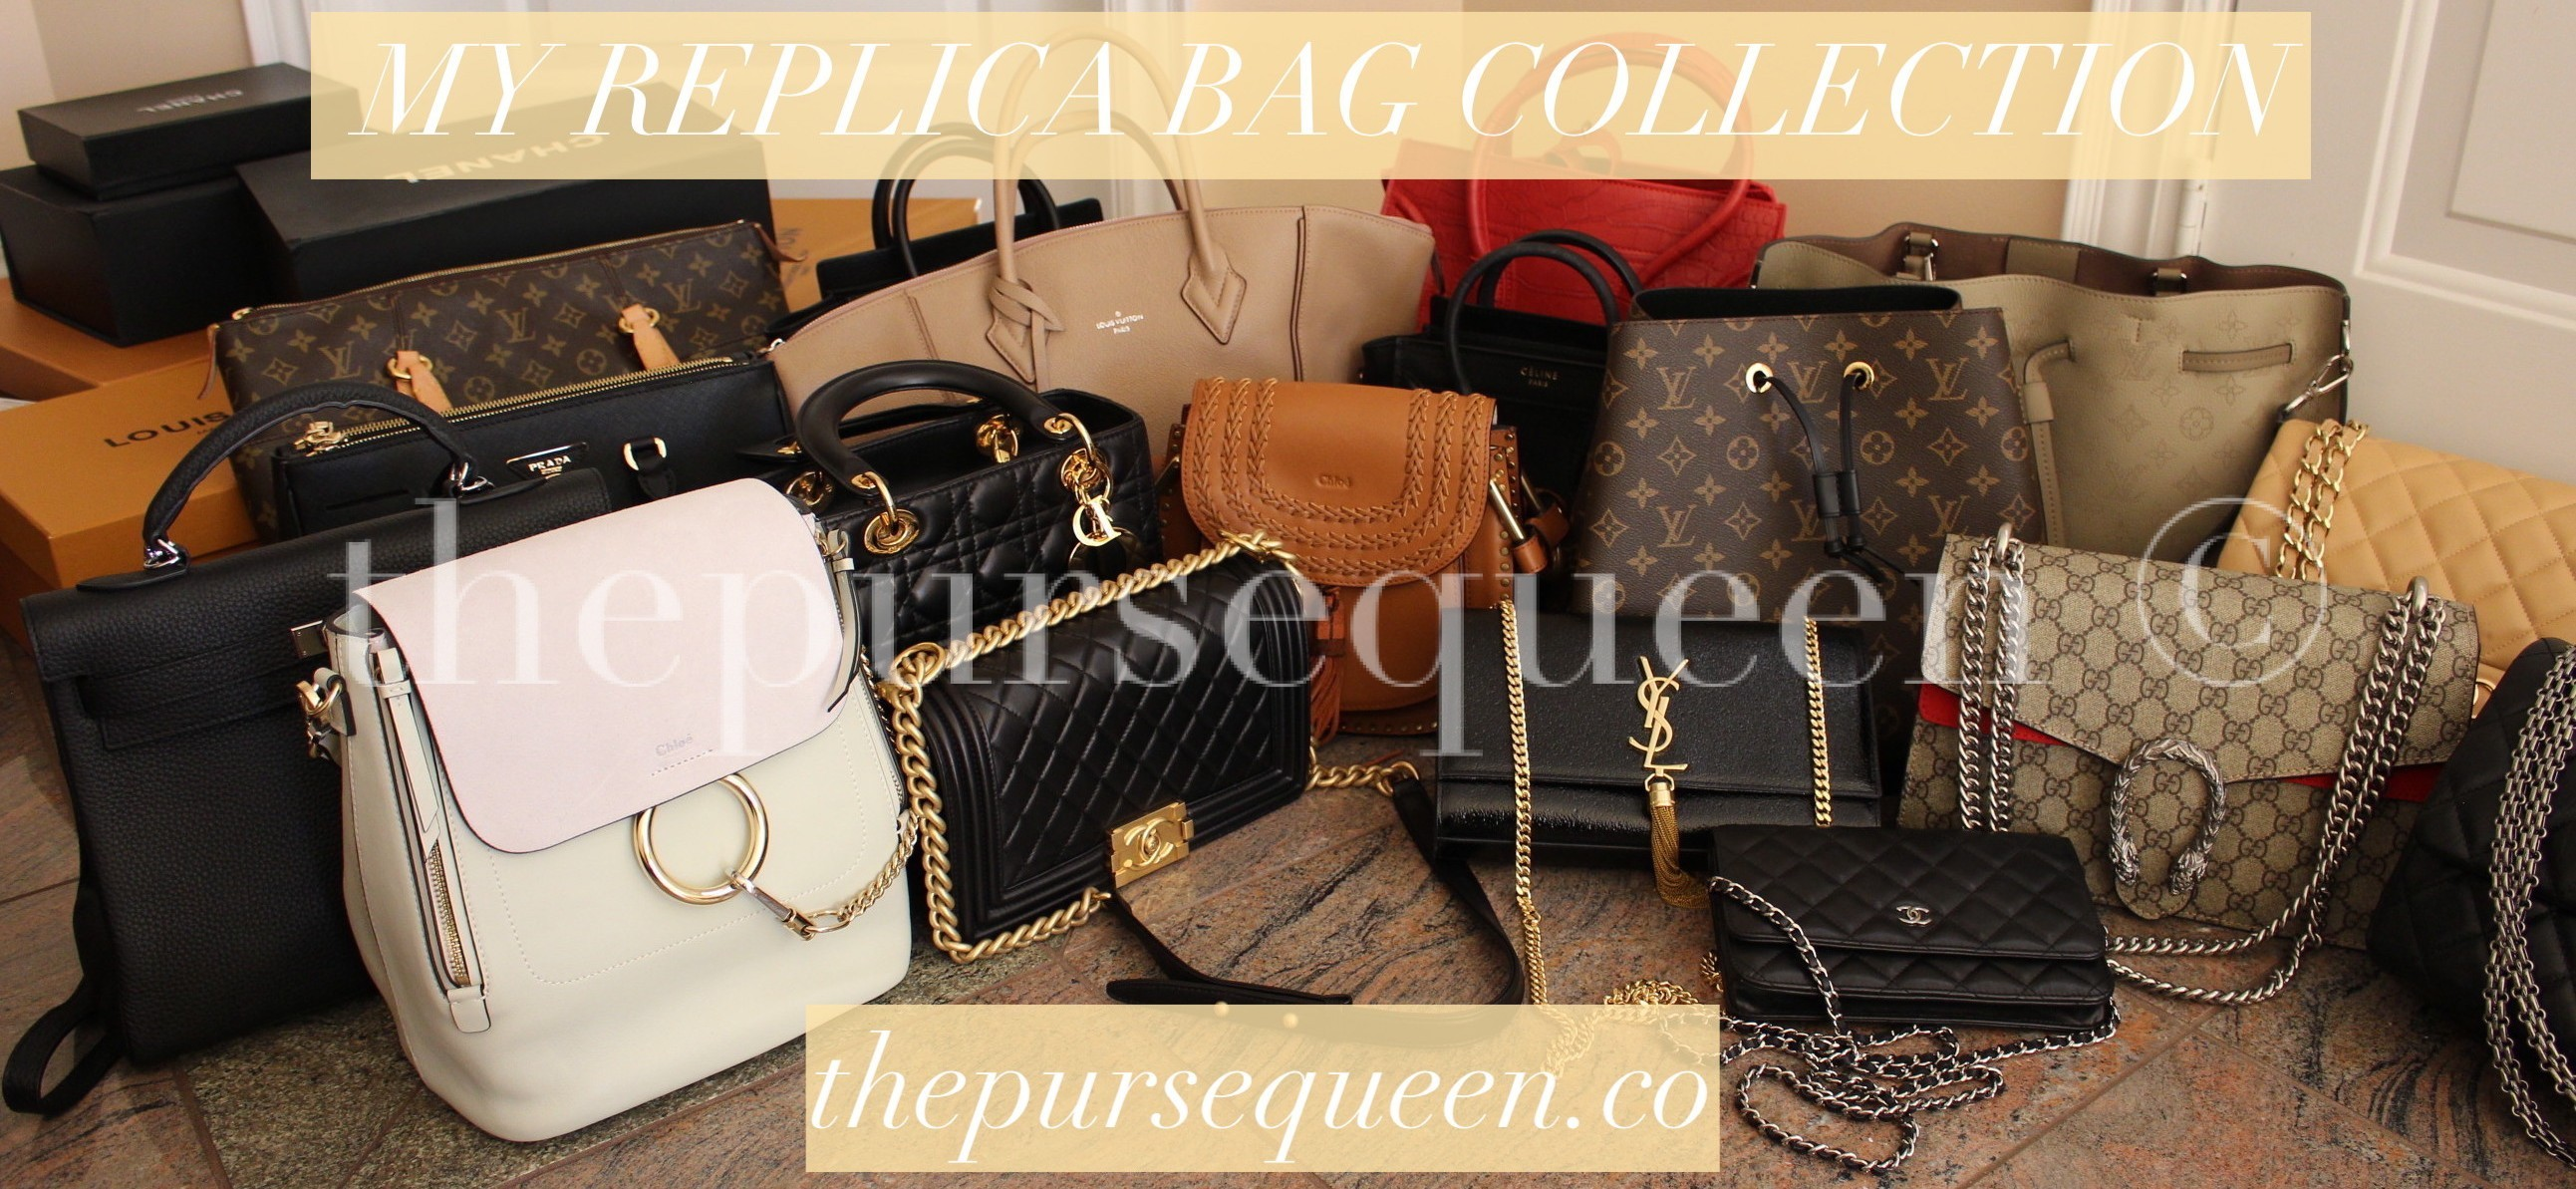 74ae2191c9ce RECOMMENDED REPLICA SELLERS LIST - Authentic   Replica Handbag Reviews by  The Purse Queen  replicabag